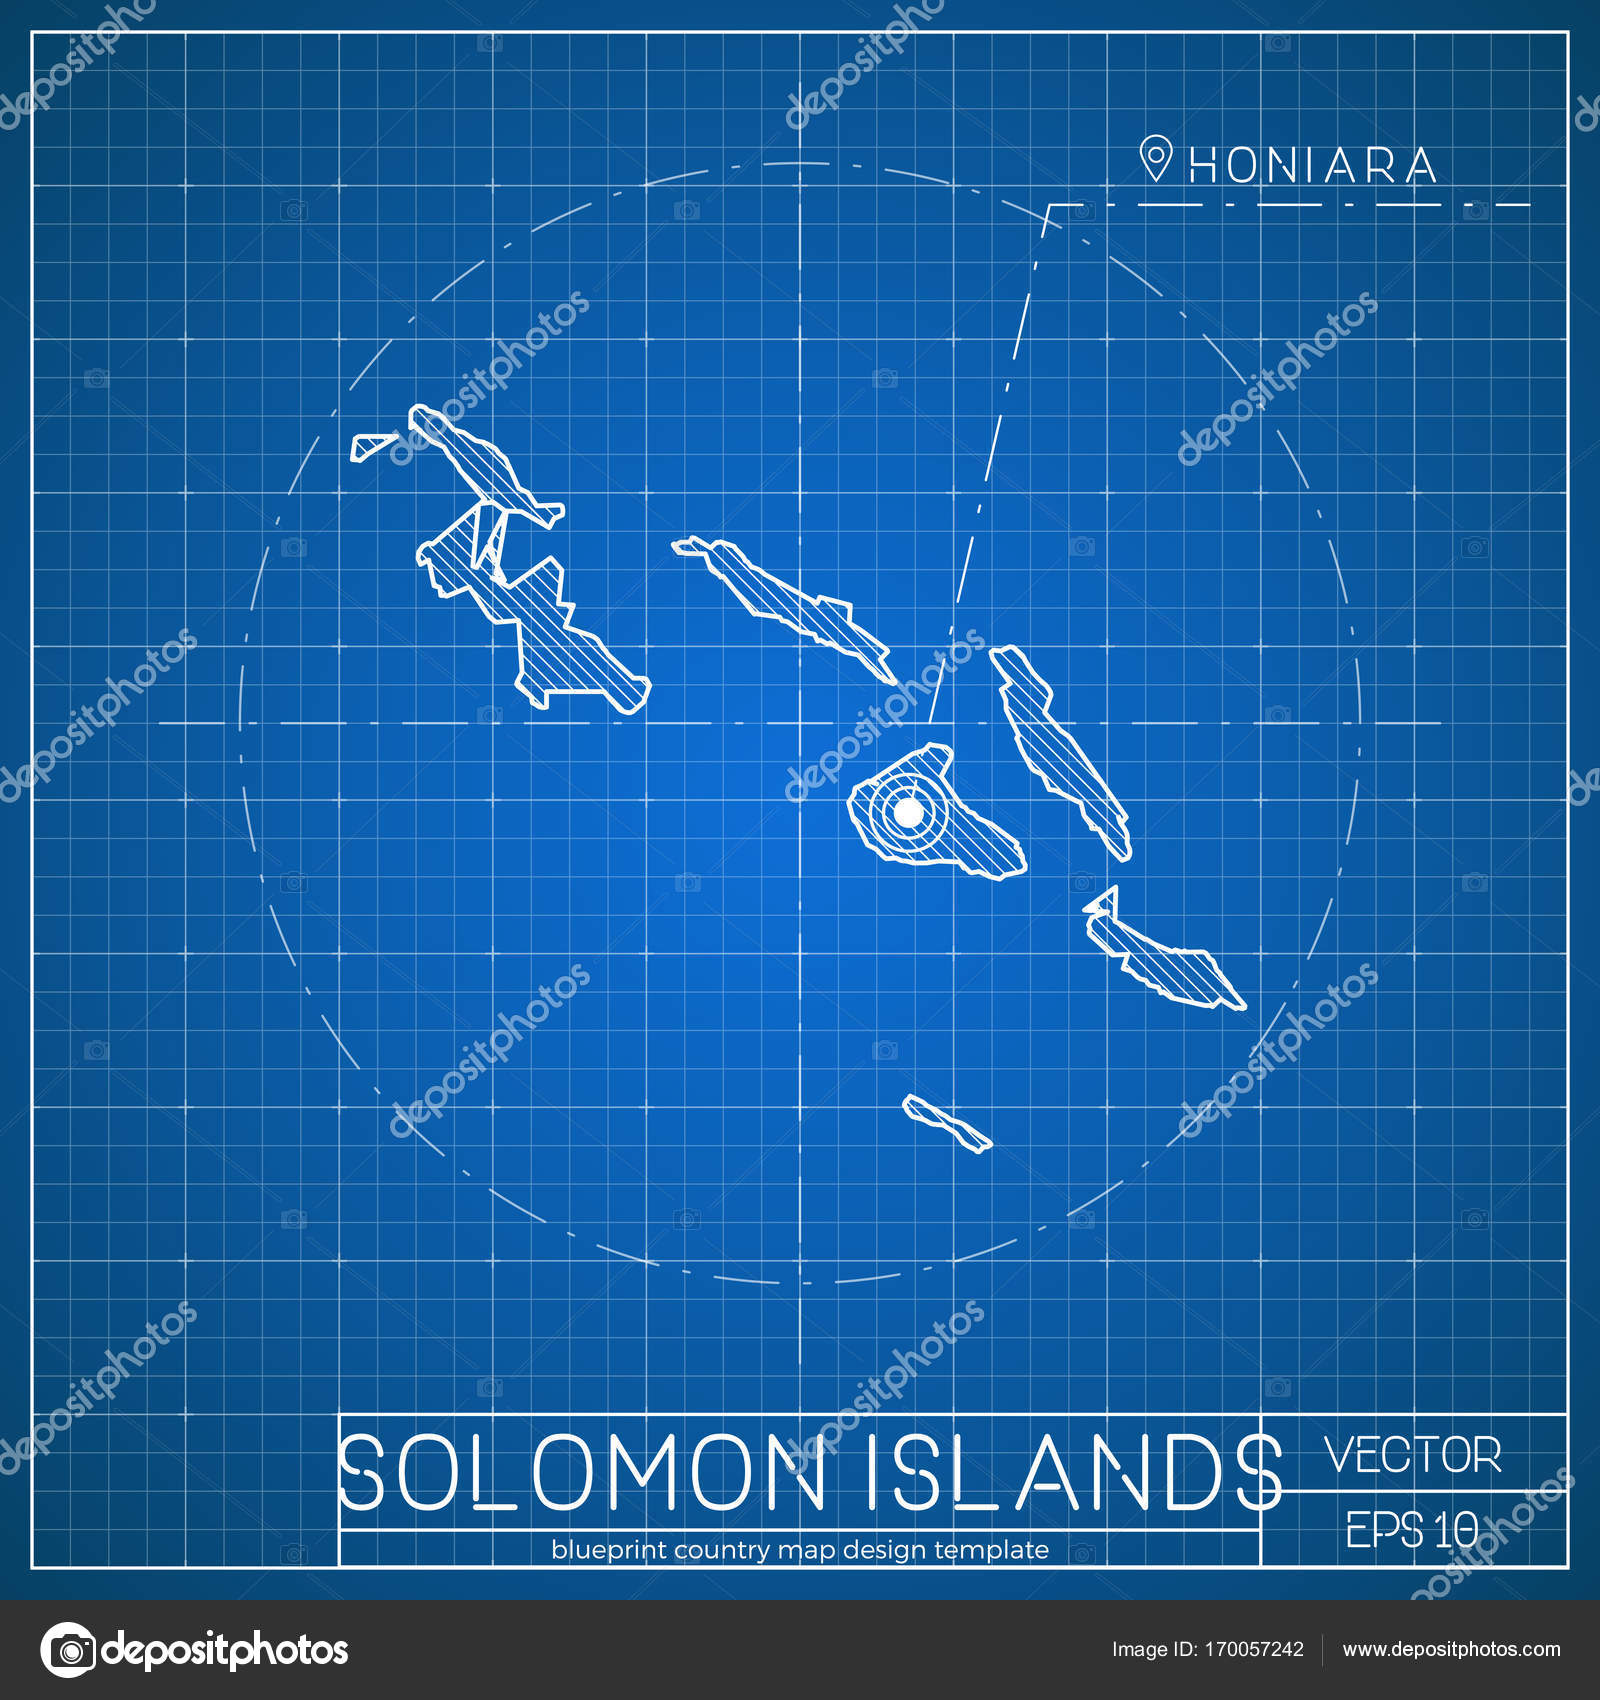 Solomon islands blueprint map template with capital city honiara solomon islands blueprint map template with capital city honiara marked on blueprint solomon stock vector malvernweather Images